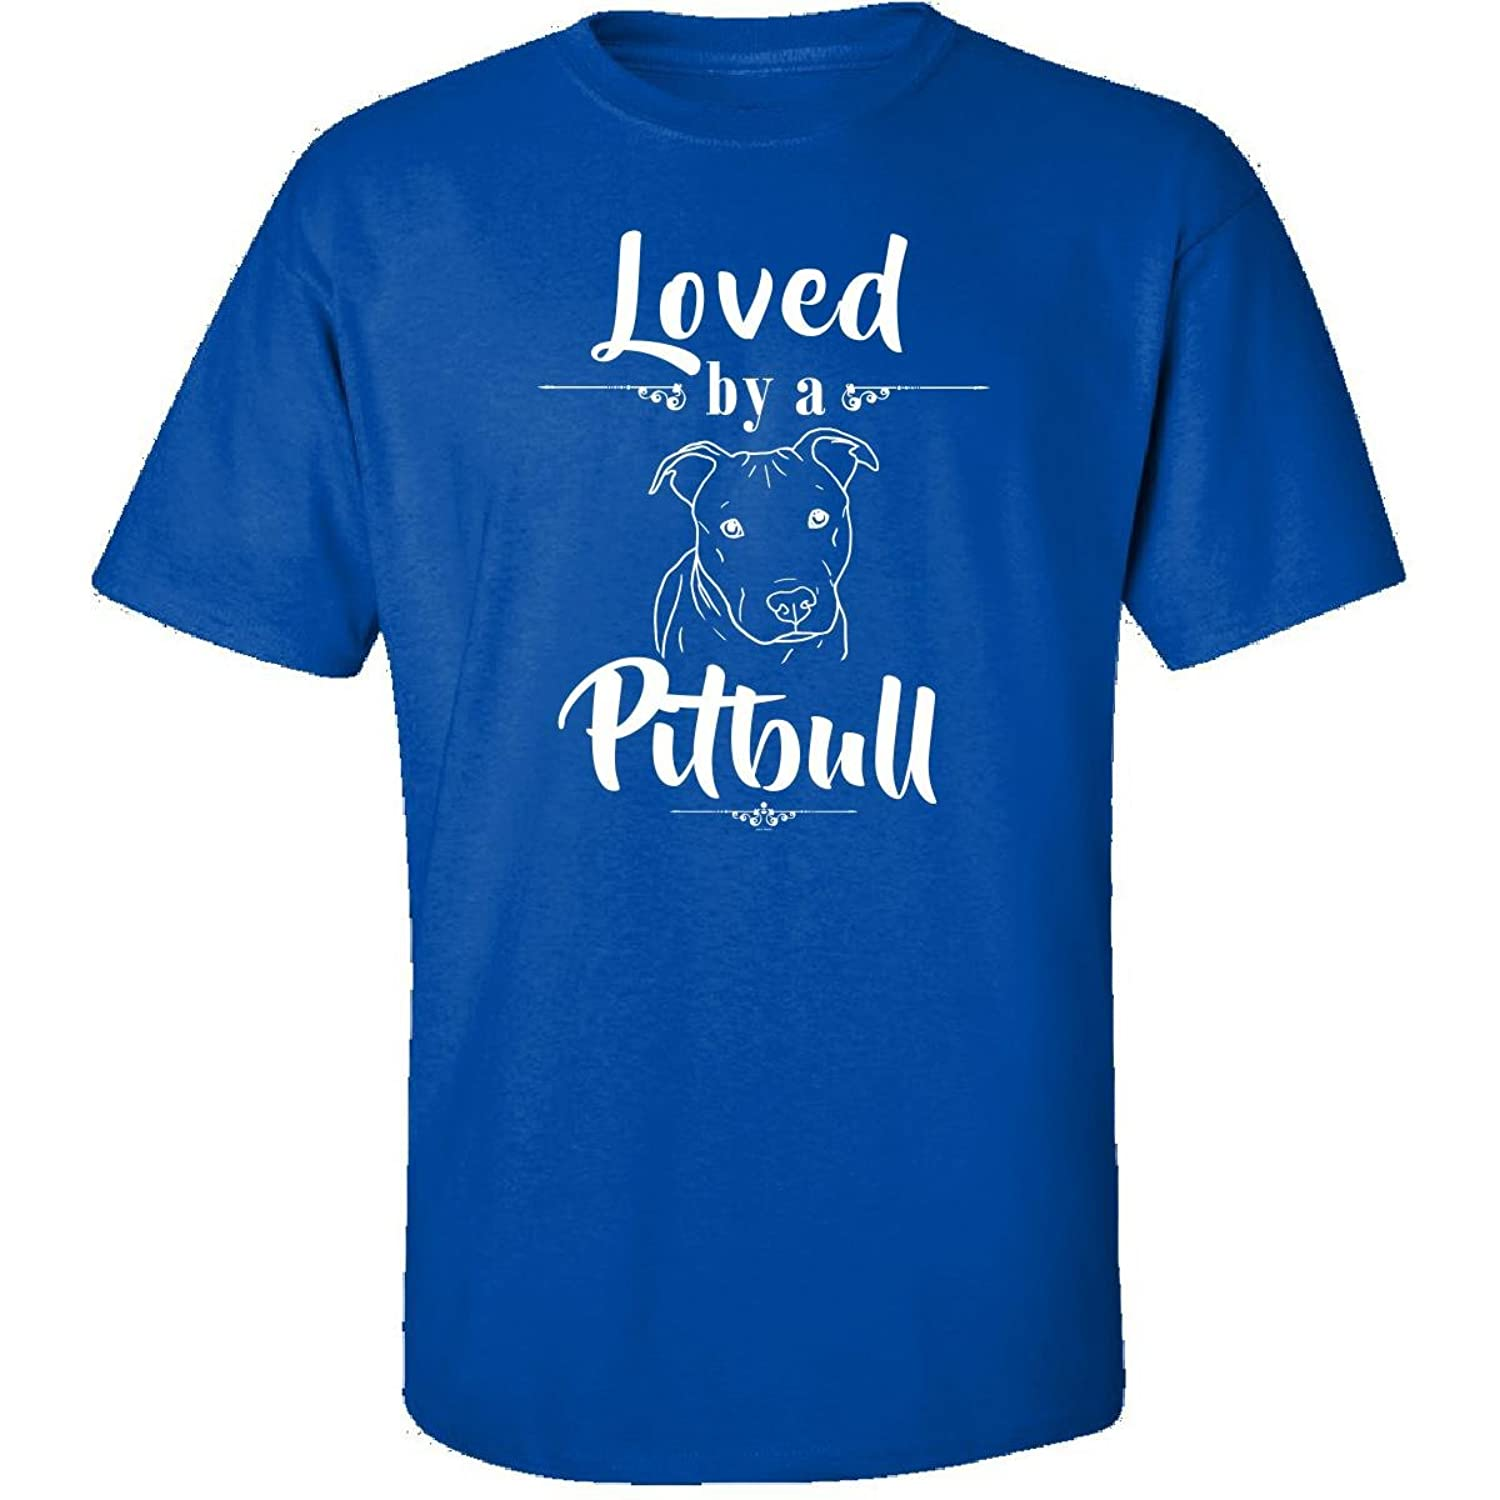 Gifts For Pitbull Lovers Or Owners Loved By A Dog - Adult Shirt